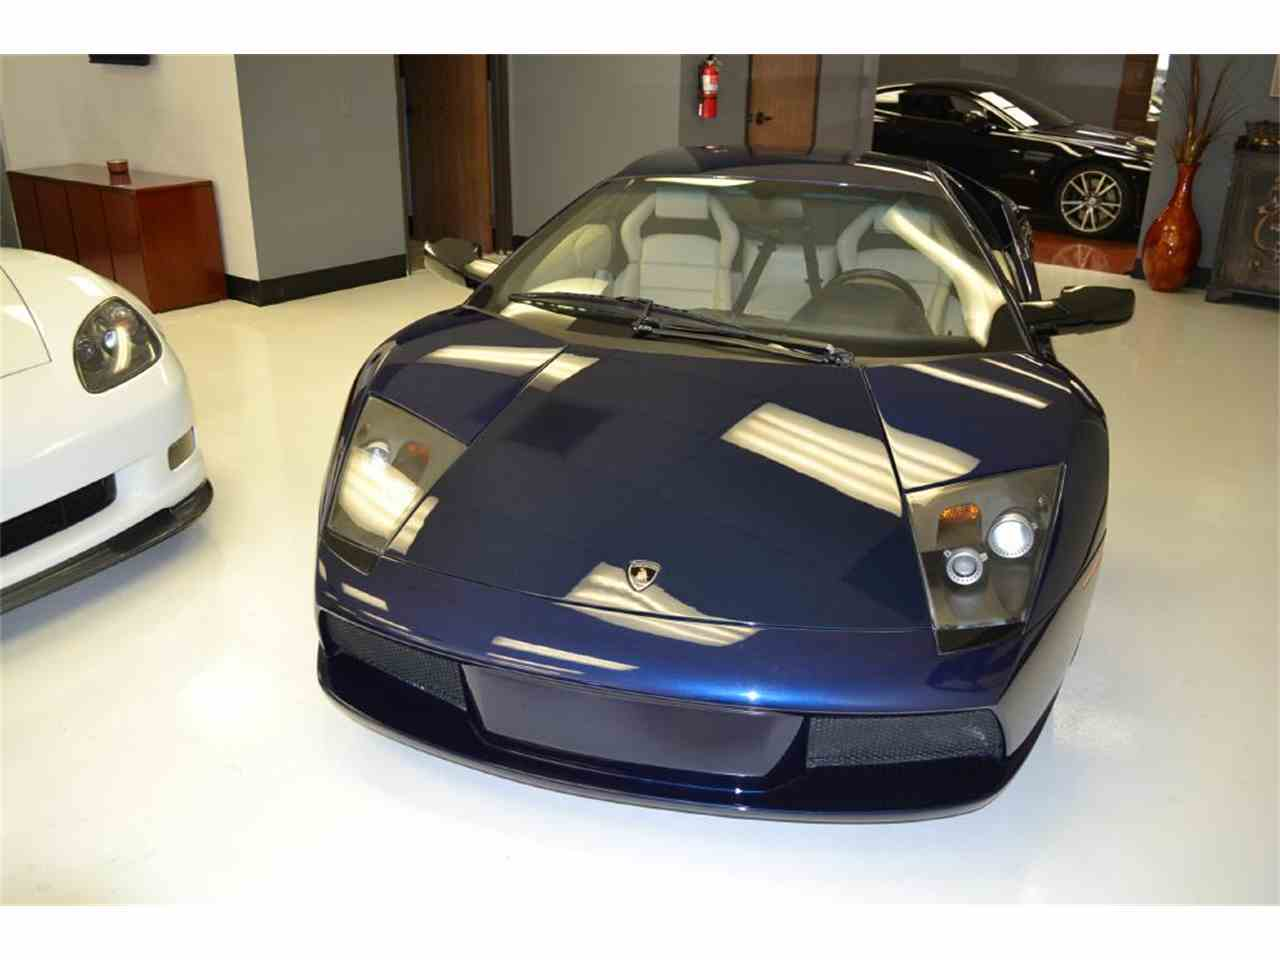 Large Picture of 2004 Murcielago located in California Offered by Fortunauto 13 LLC - LVJ1